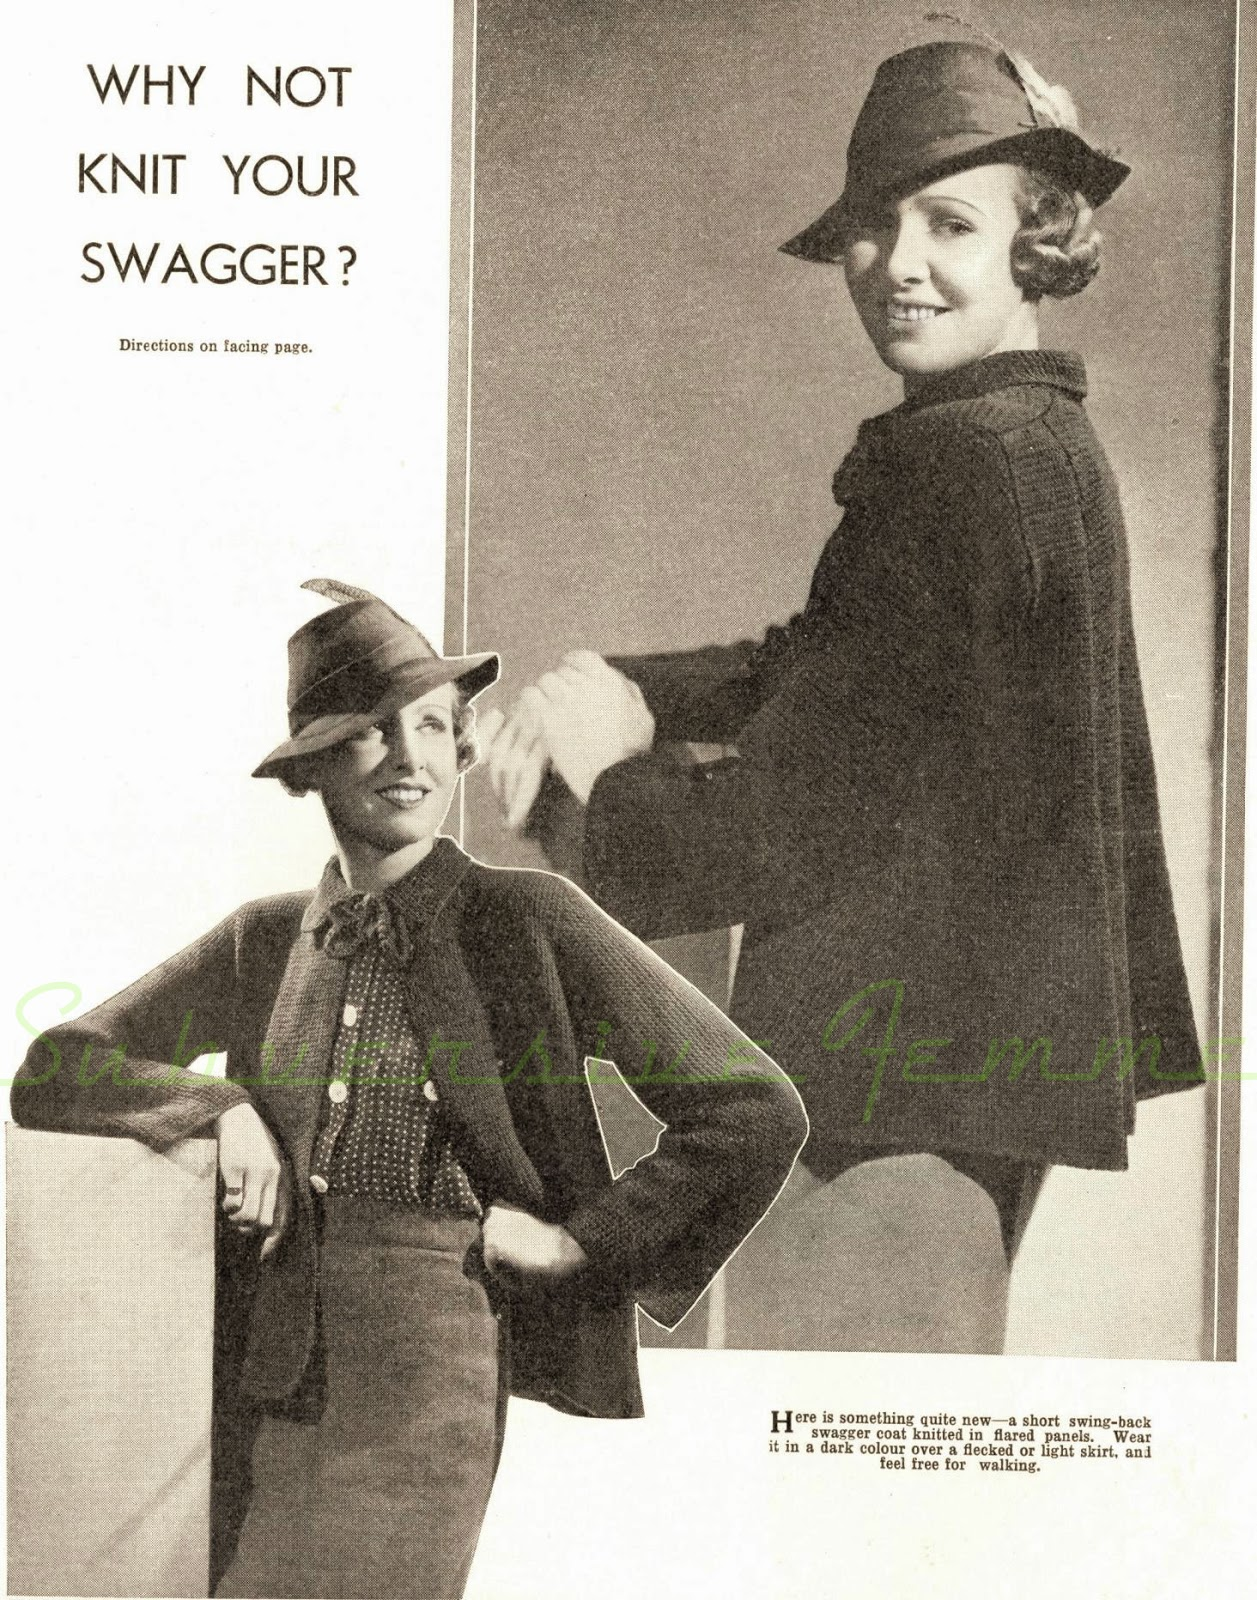 free knitting pattern 1930s swagger coat swing knitted 30s 1940s war era feather hat blouse polka dots smart 34 36